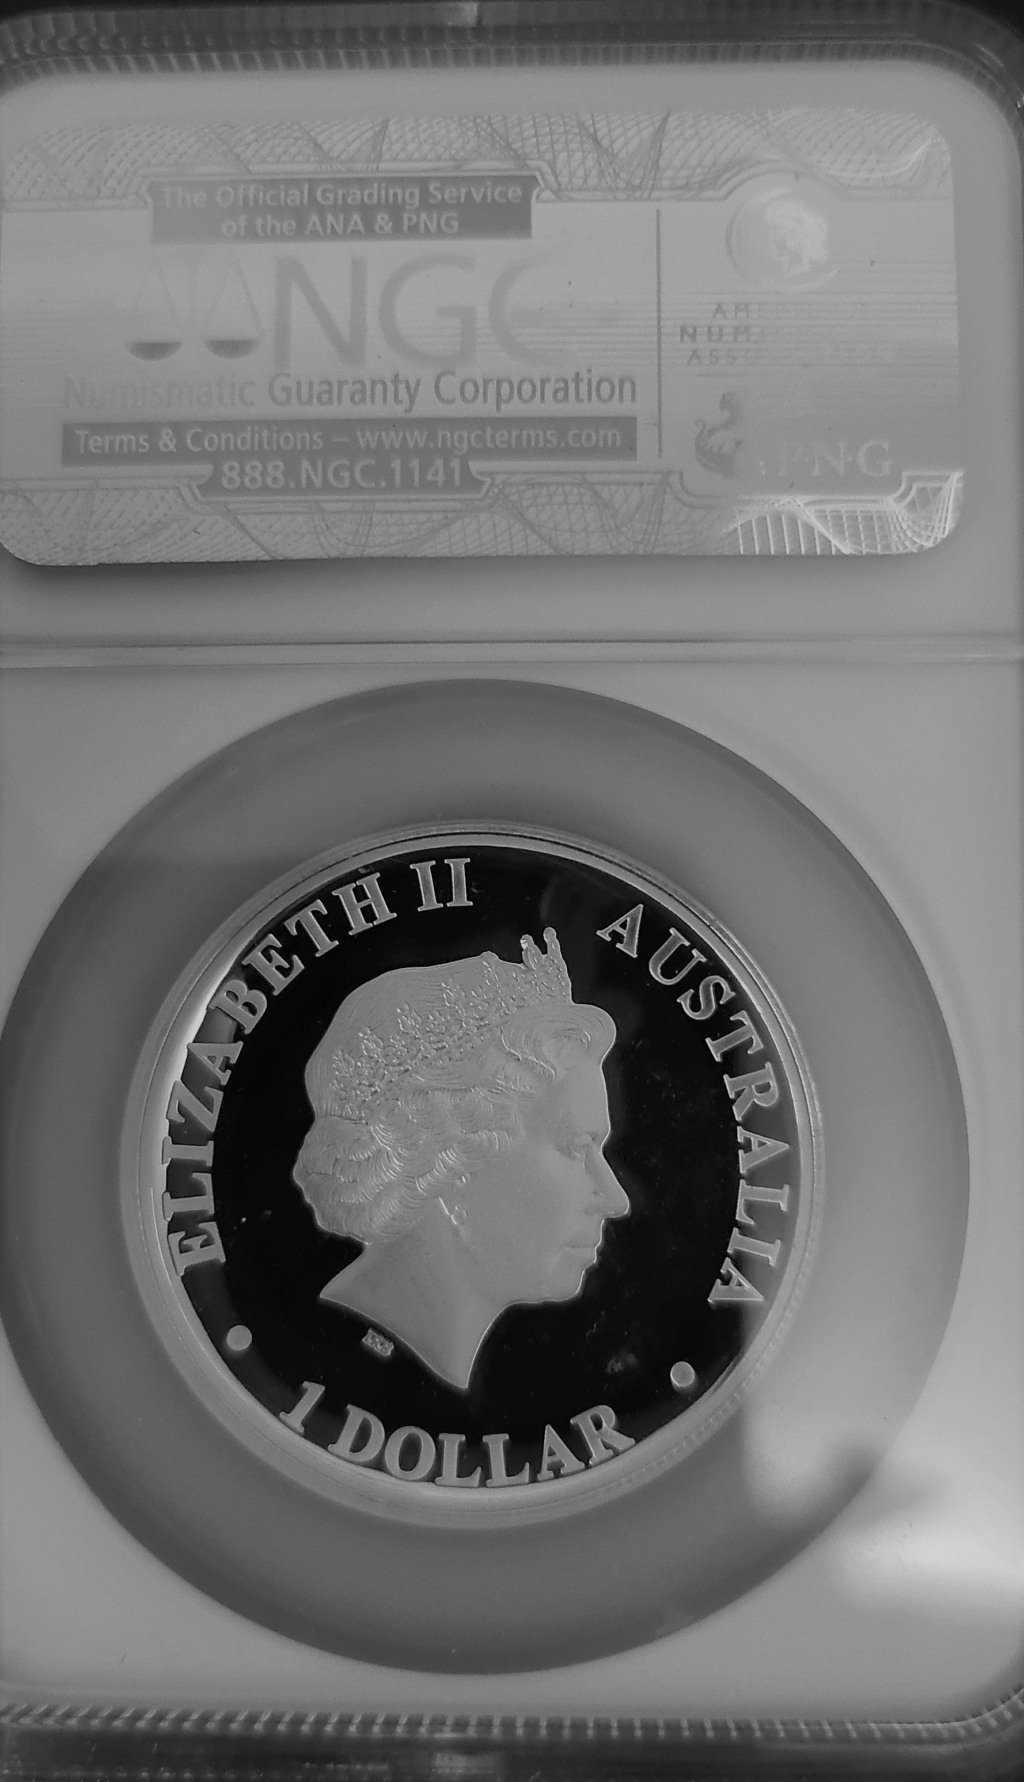 2016 NGC PF69 ULTRA CAMEO WEDGE TAILED EAGLE 1 OZ SILVER COIN high Relief 20211014